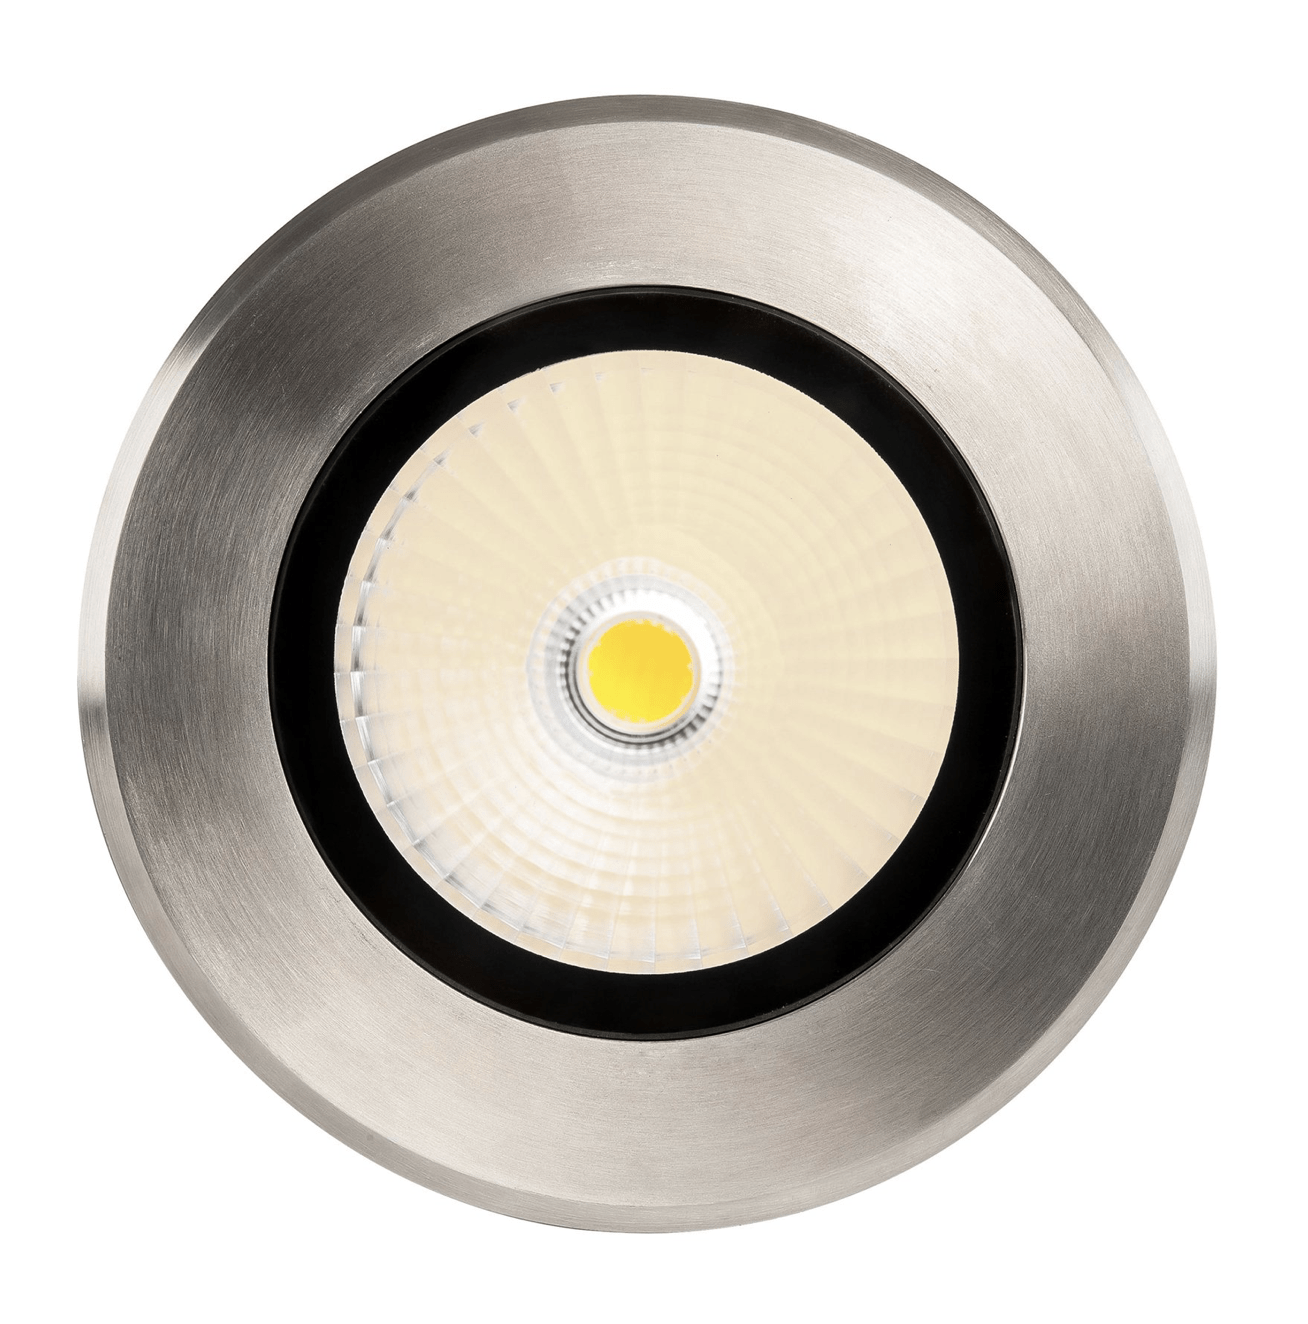 Inground KLIP 30W (narrow beam) Inground Uplighter